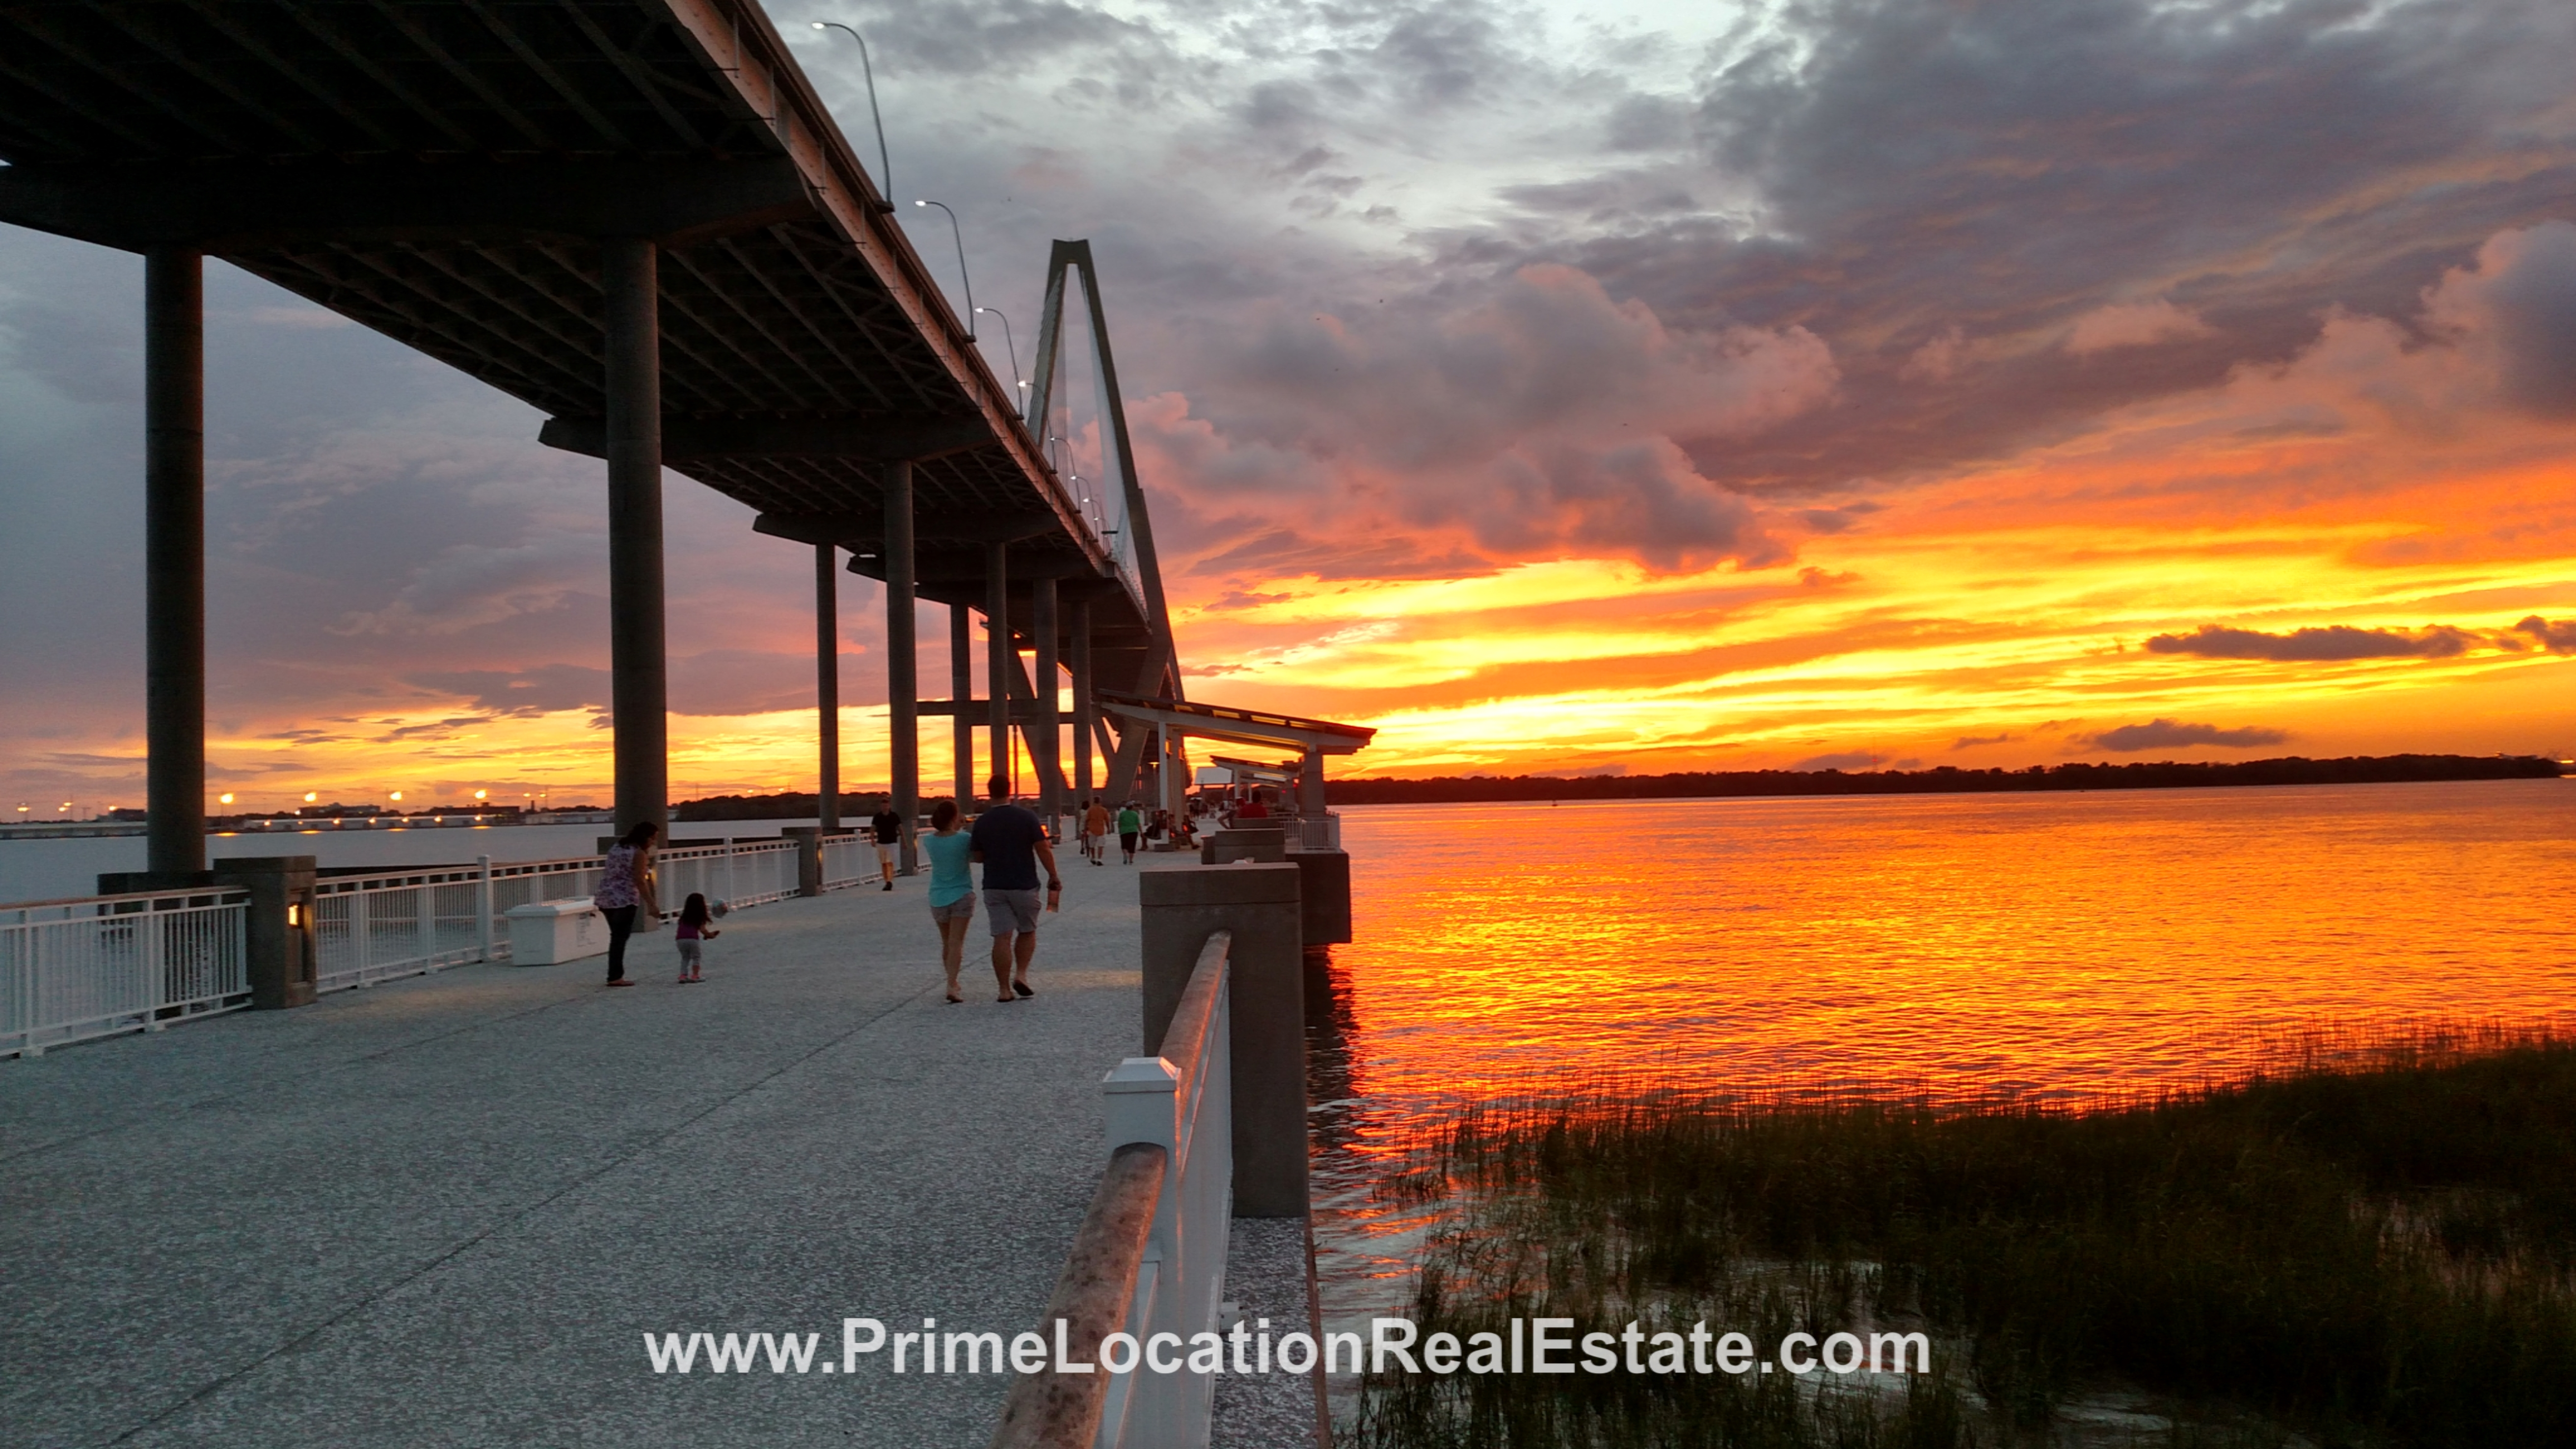 Sunset in Mt Pleasant  - Charleston SC